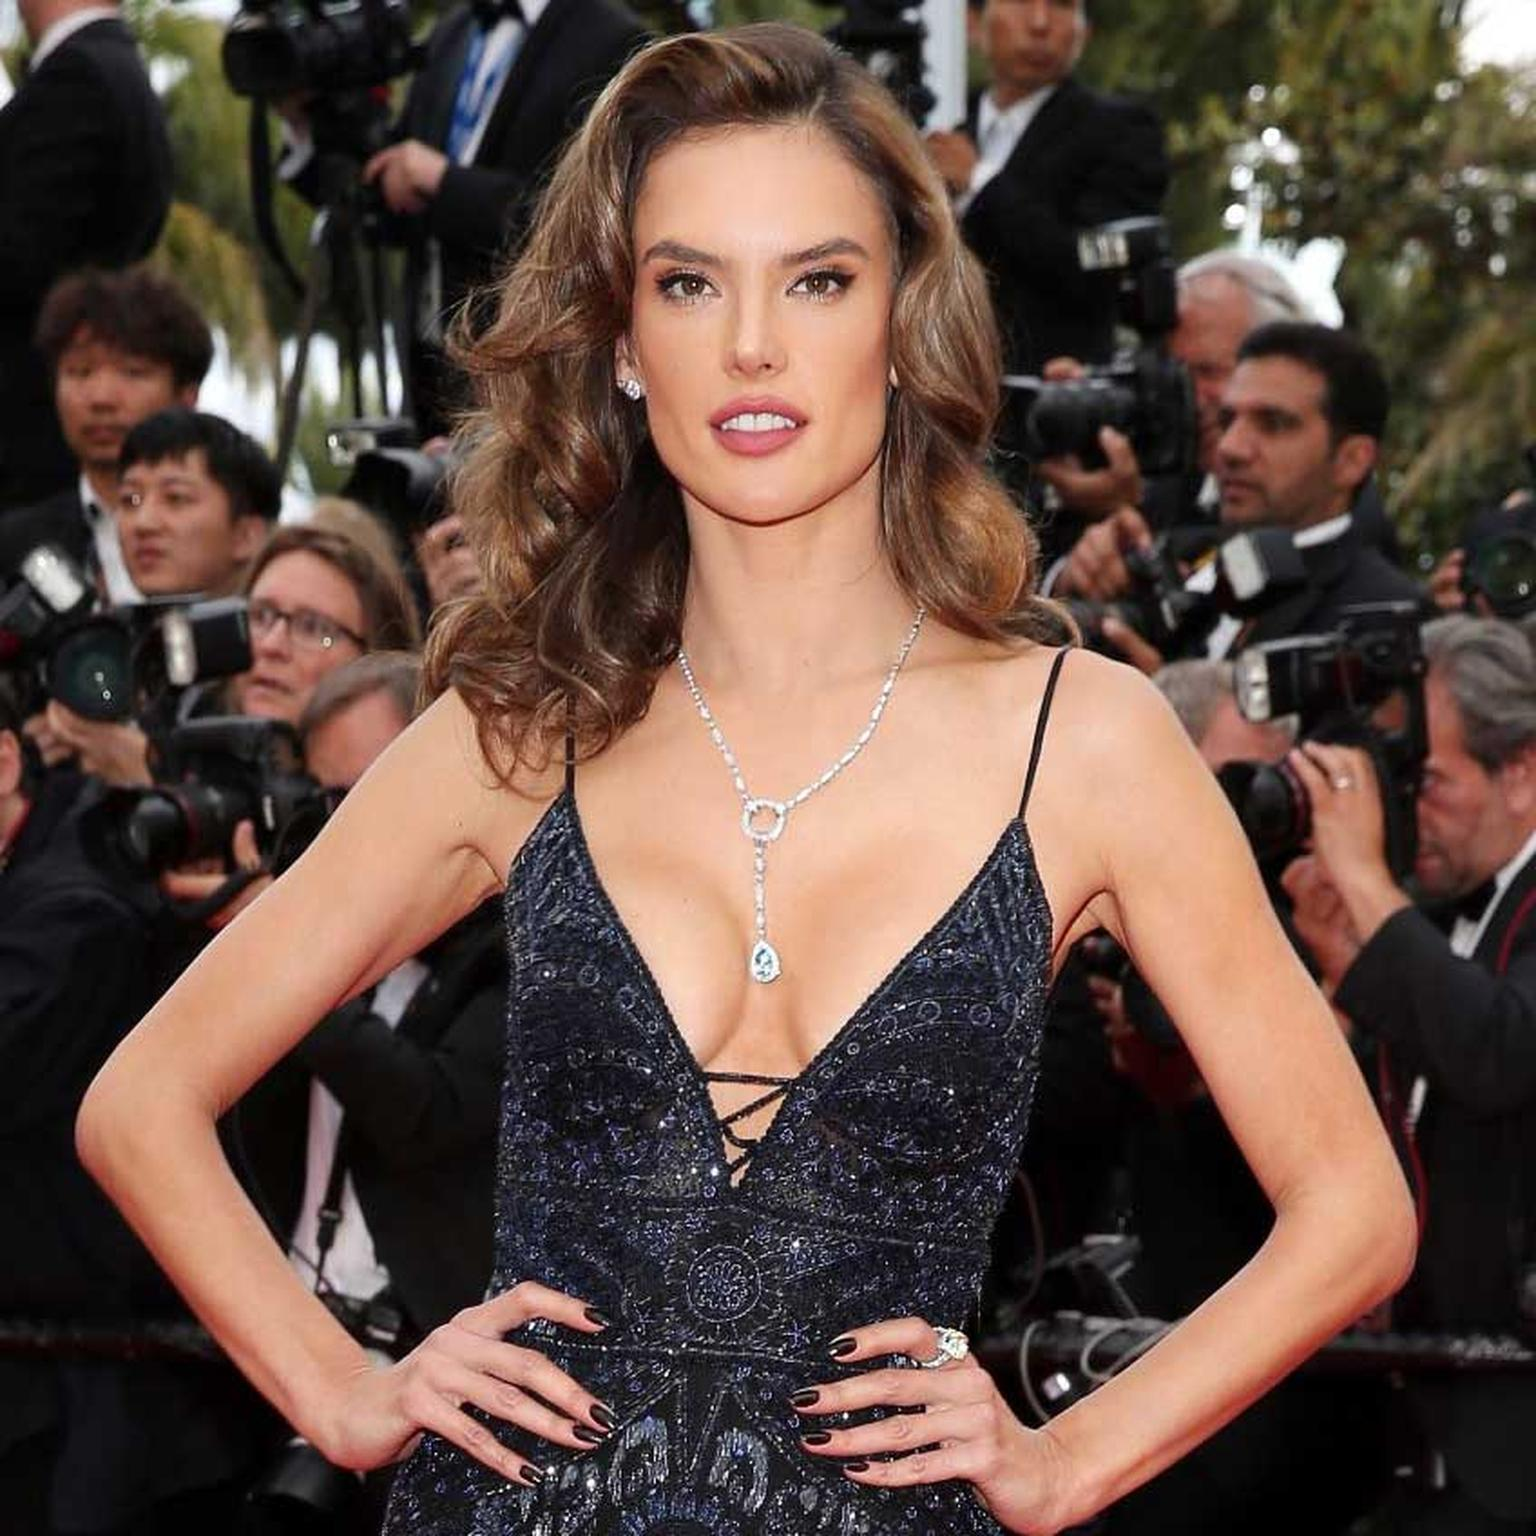 Alessandra Ambrosio in Boucheron jewels Cannes Red Carpet 2018